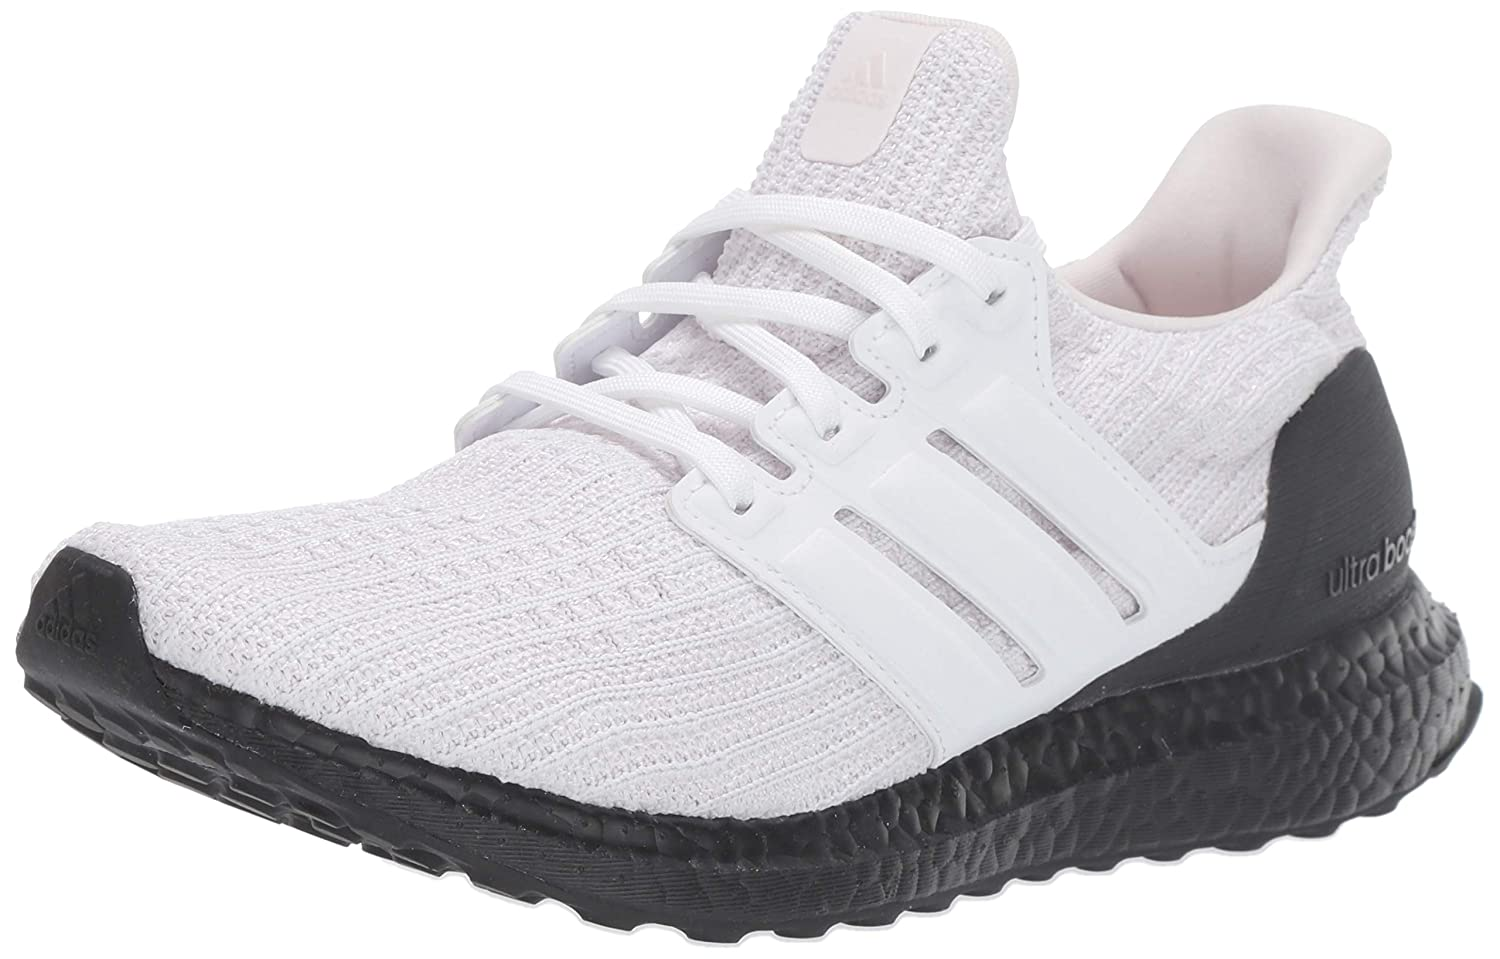 super popular 594d2 71f35 adidas Men's Ultraboost White/Black Shoes - DB3197